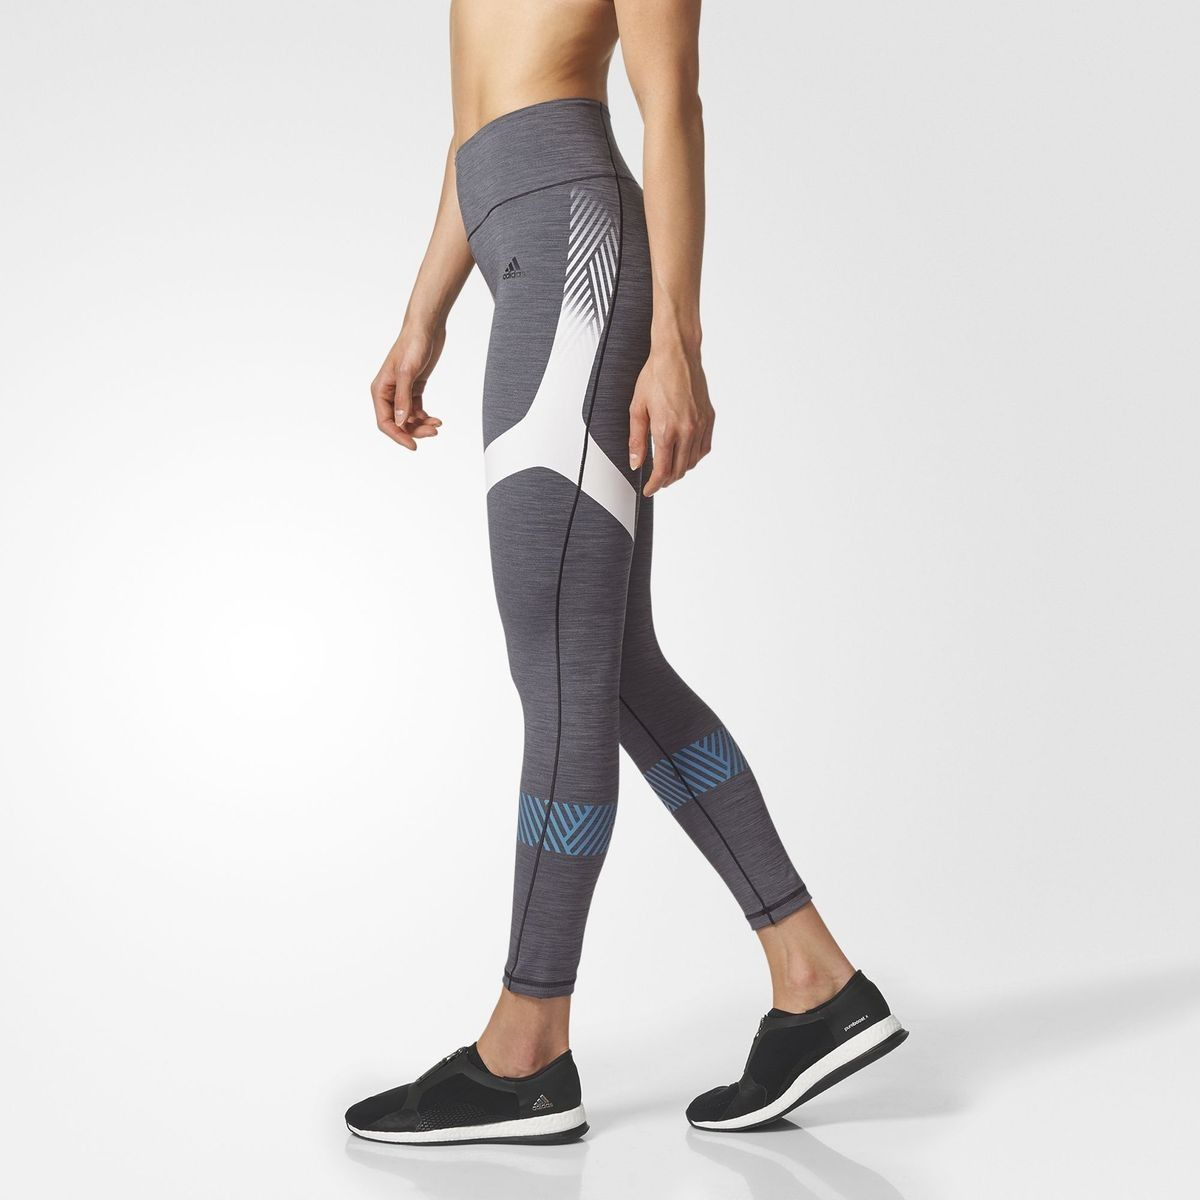 Ultimate TailleXl;xs;xxs;m;sProducts TailleXl;xs;xxs;m;sProducts Collants Adidas Ultimate Adidas Collants vyN8n0OPmw